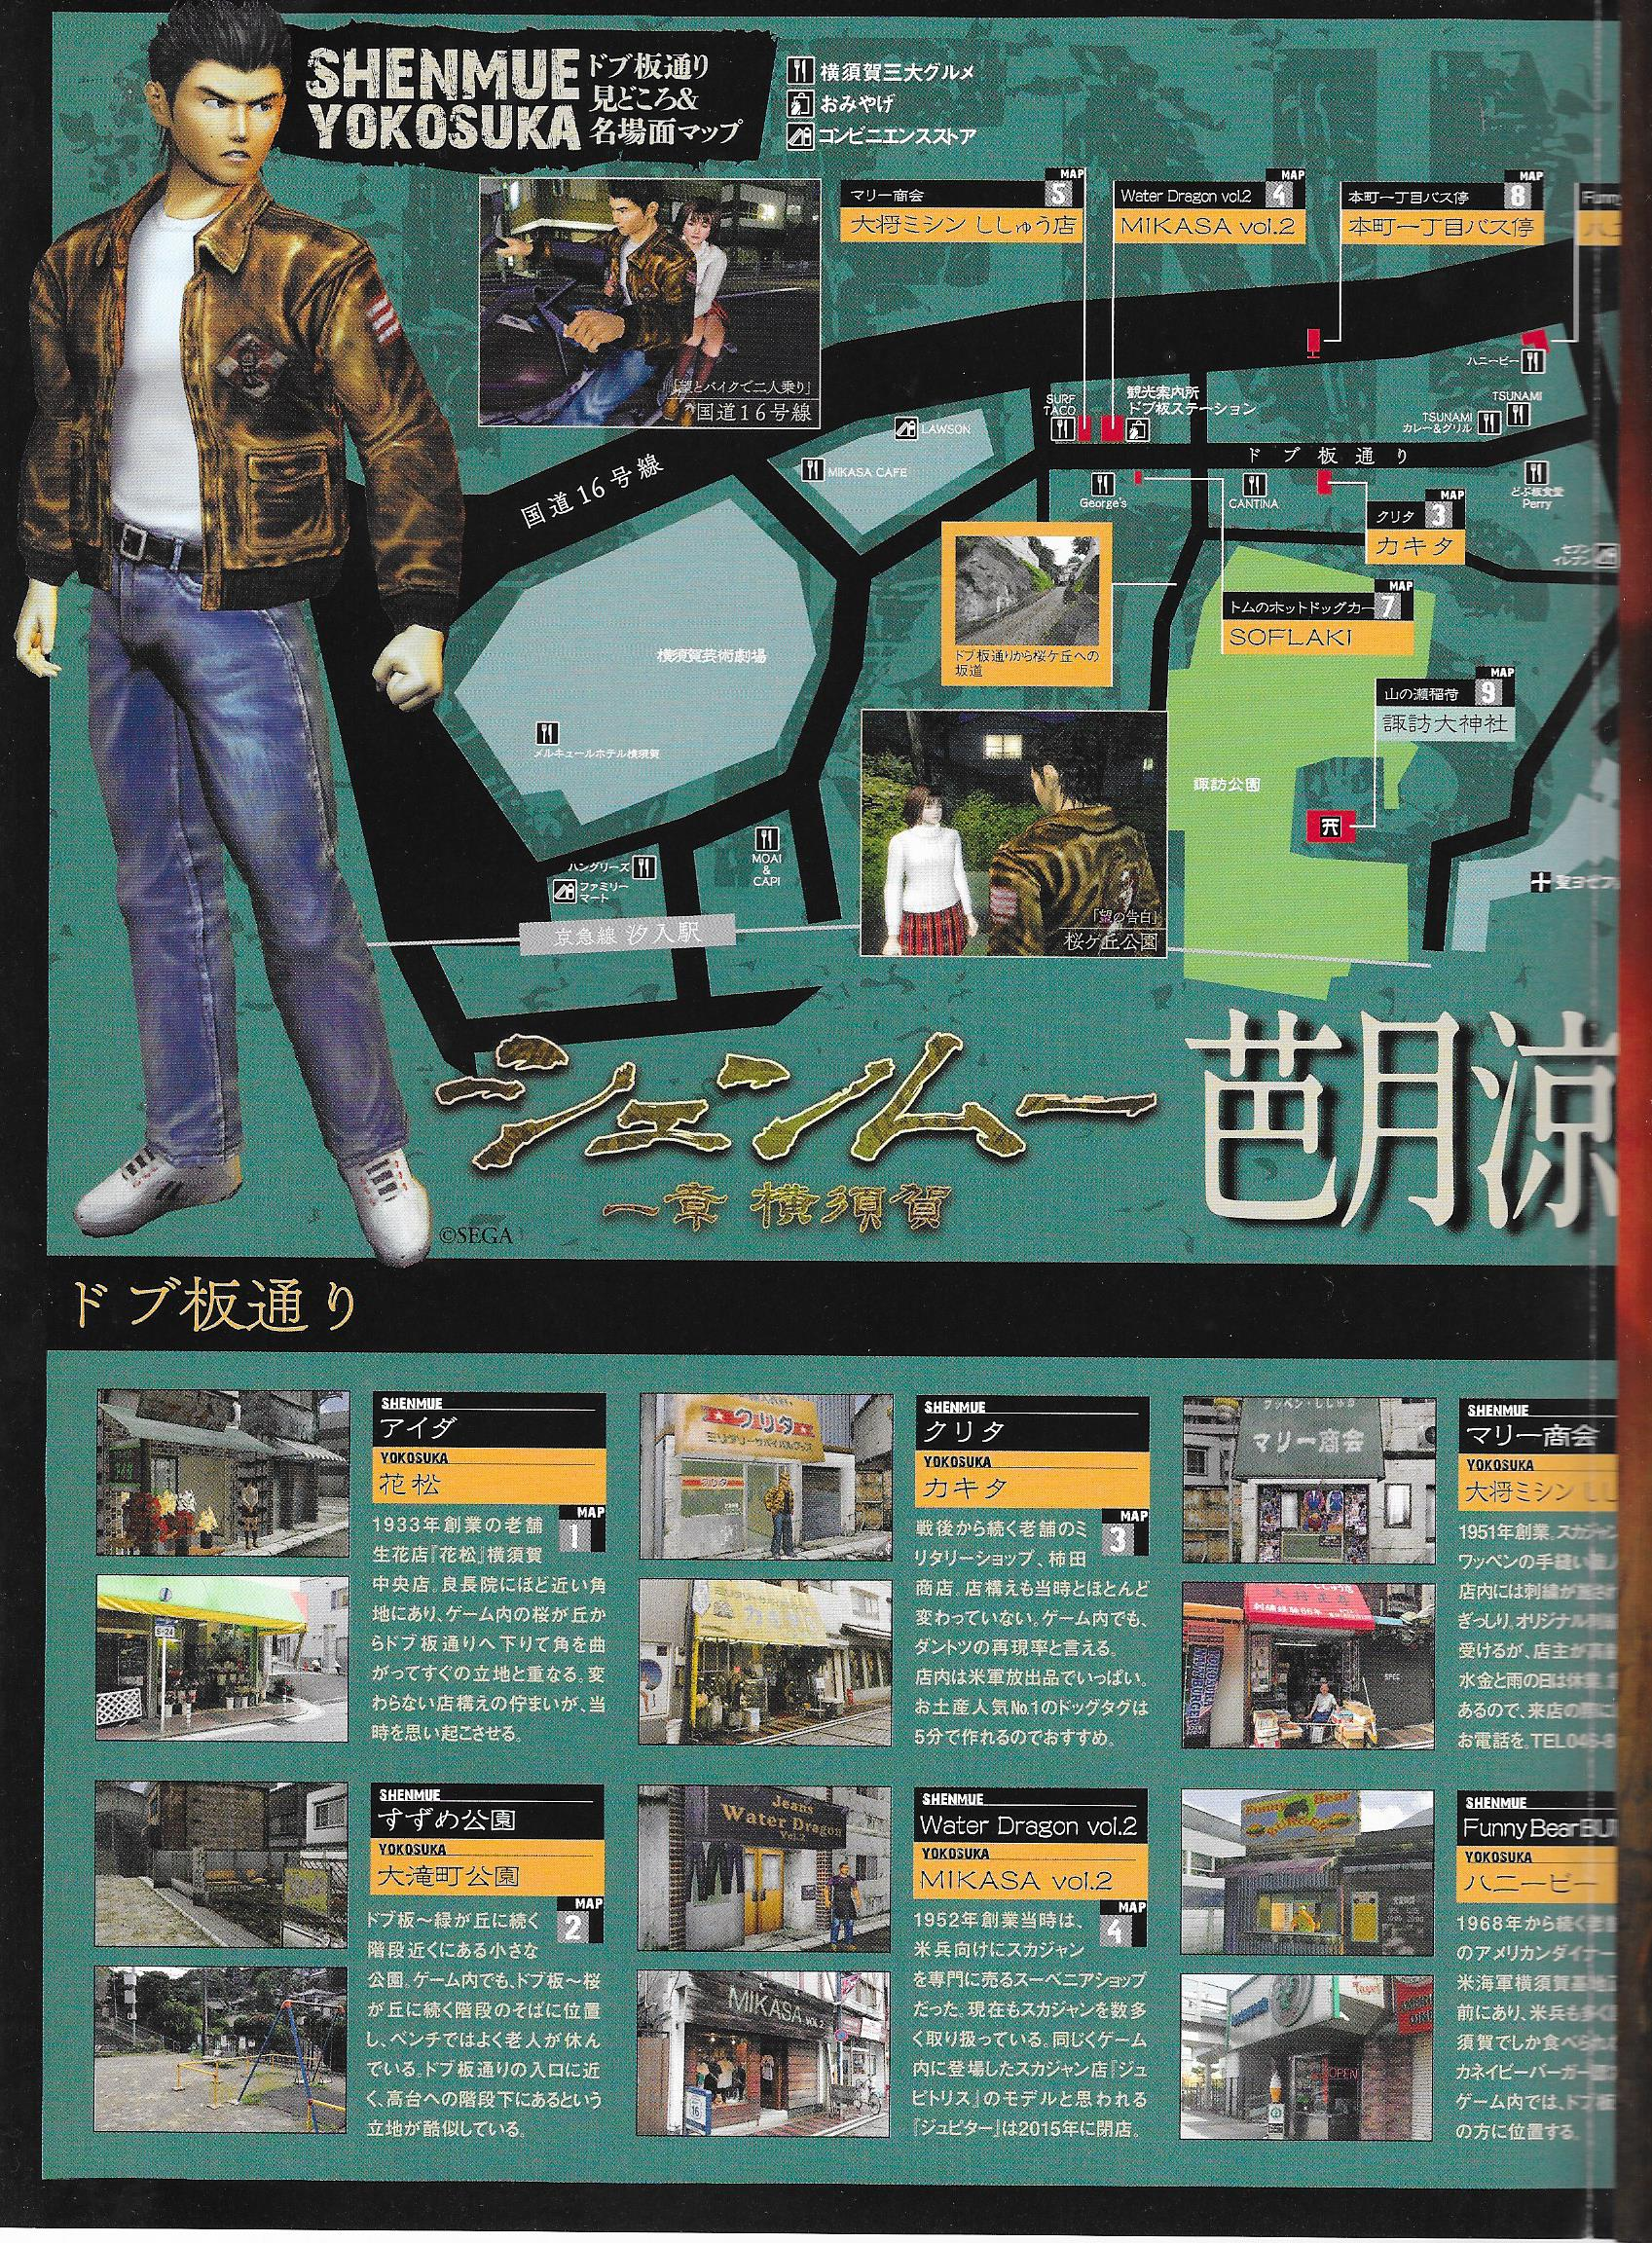 Shenmue Sacred Spot Guide Map TGS 2018 Edition